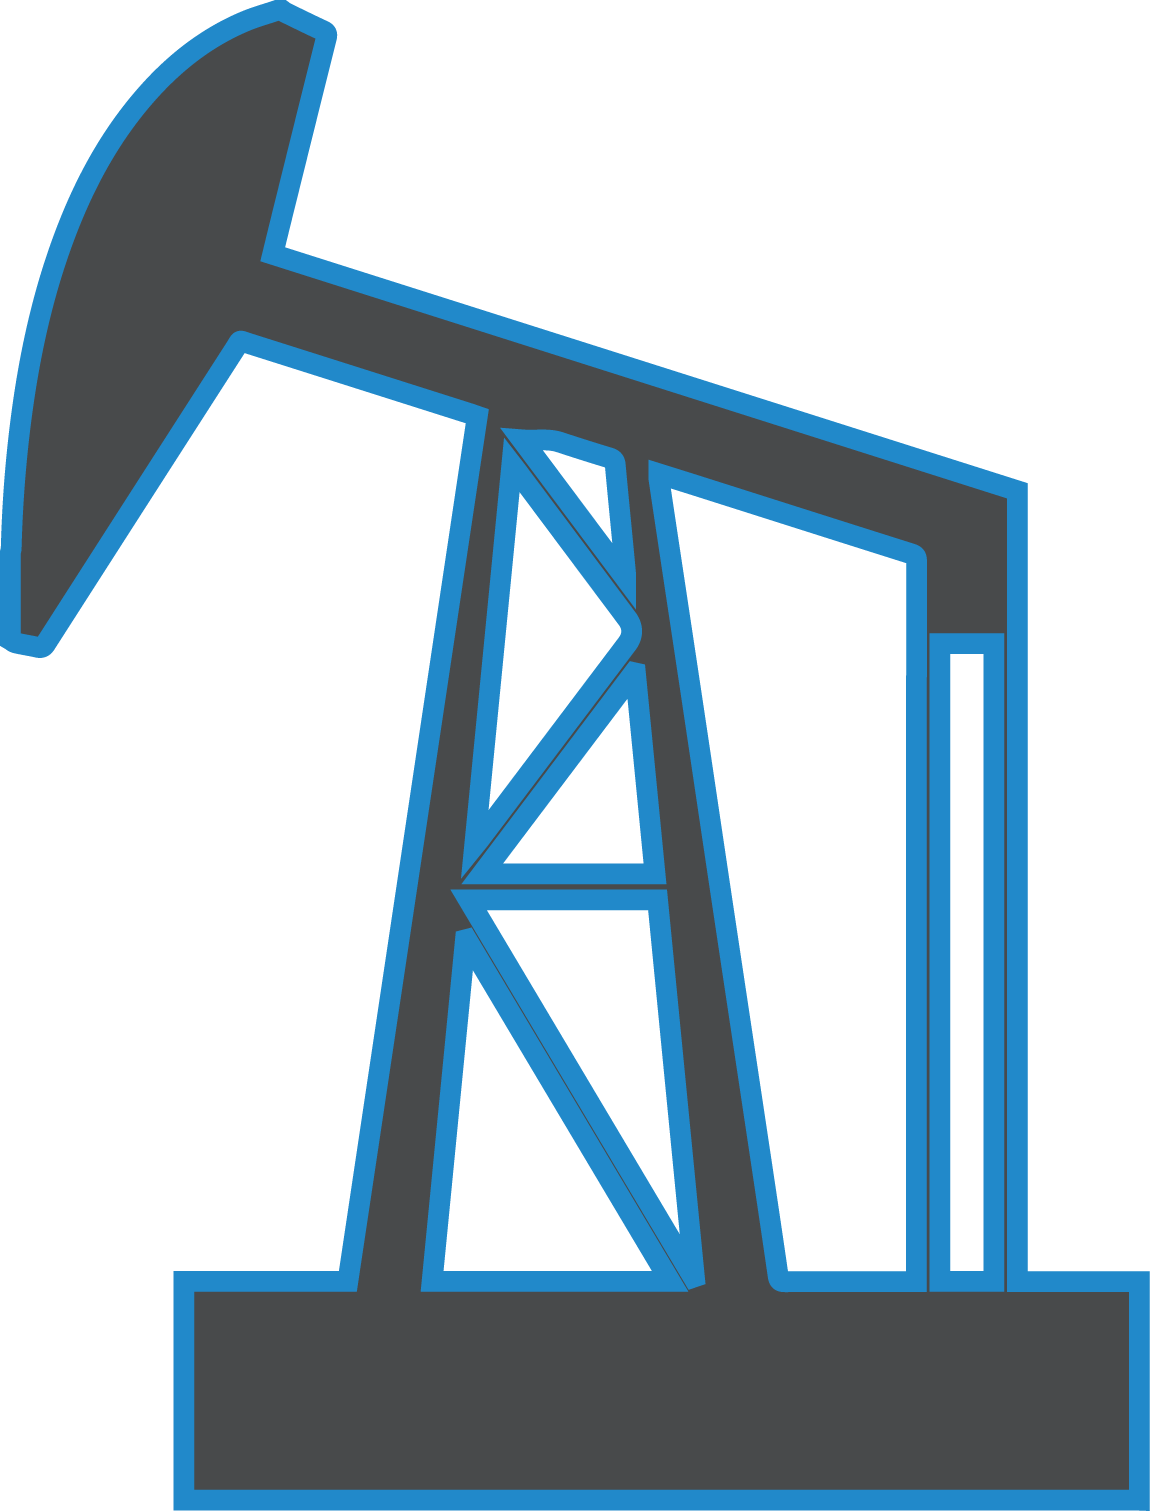 Drill clipart sound energy. What is upstream oil